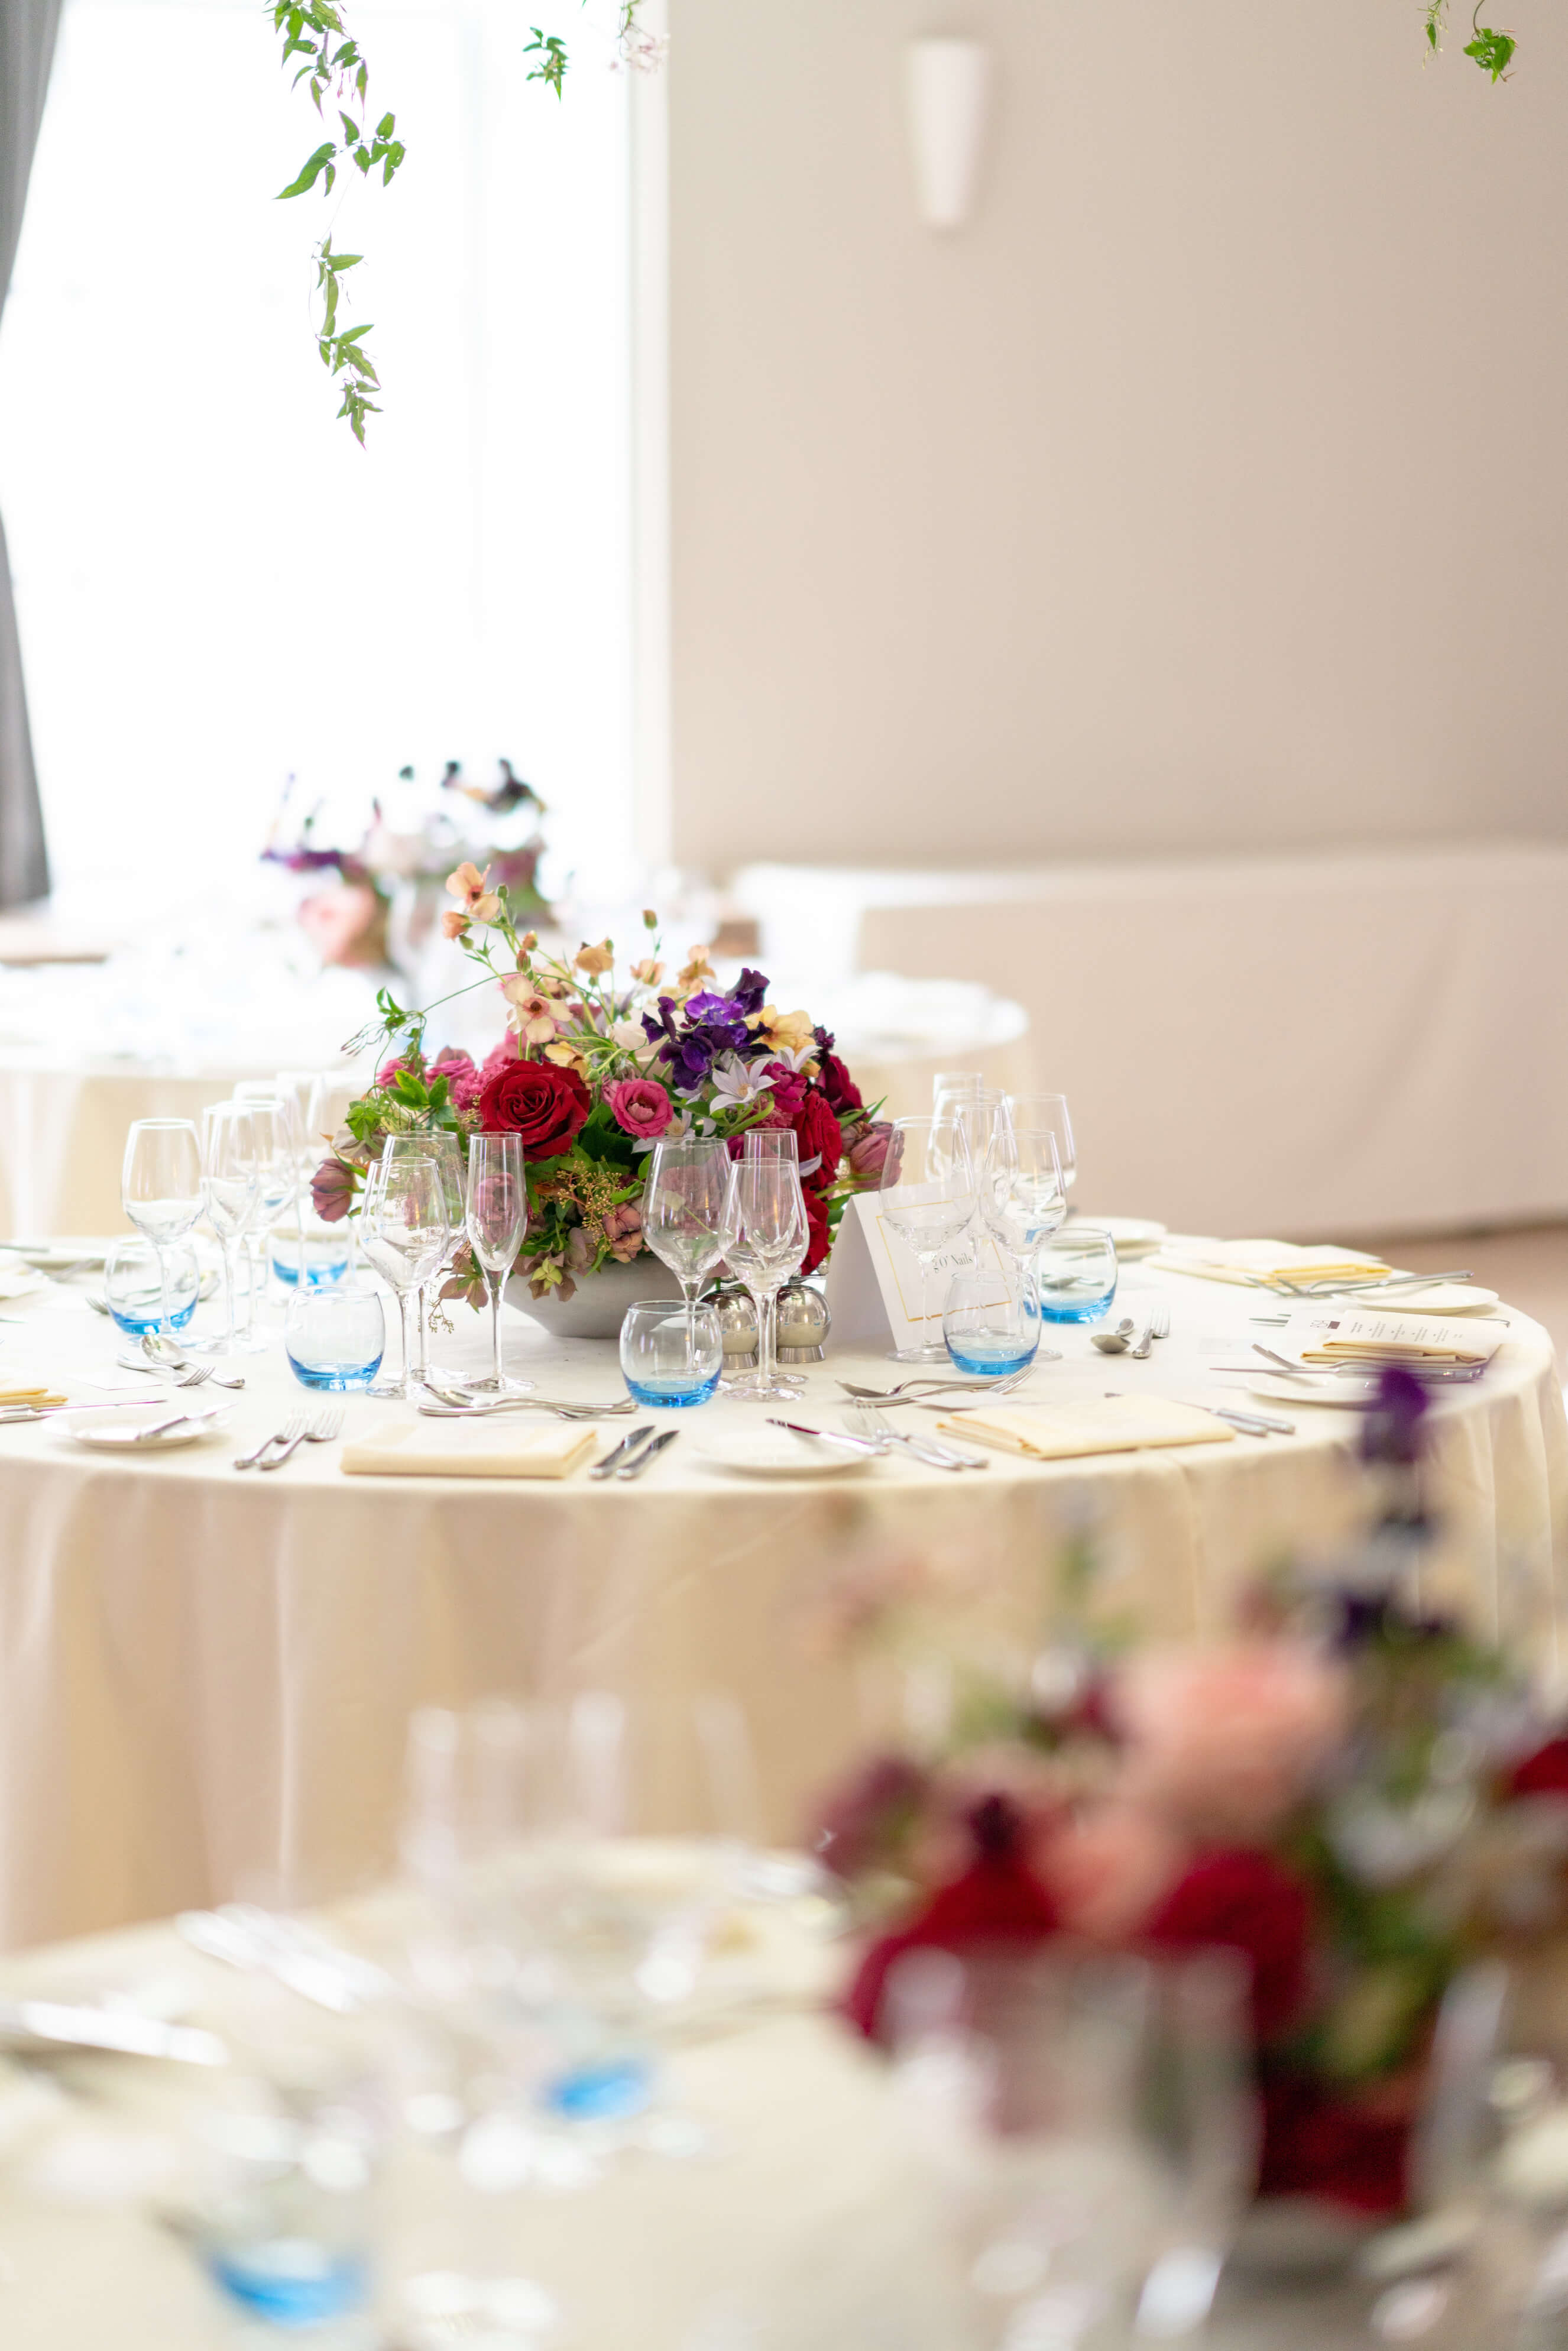 Royal Society of Arts wedding reception room with flowers